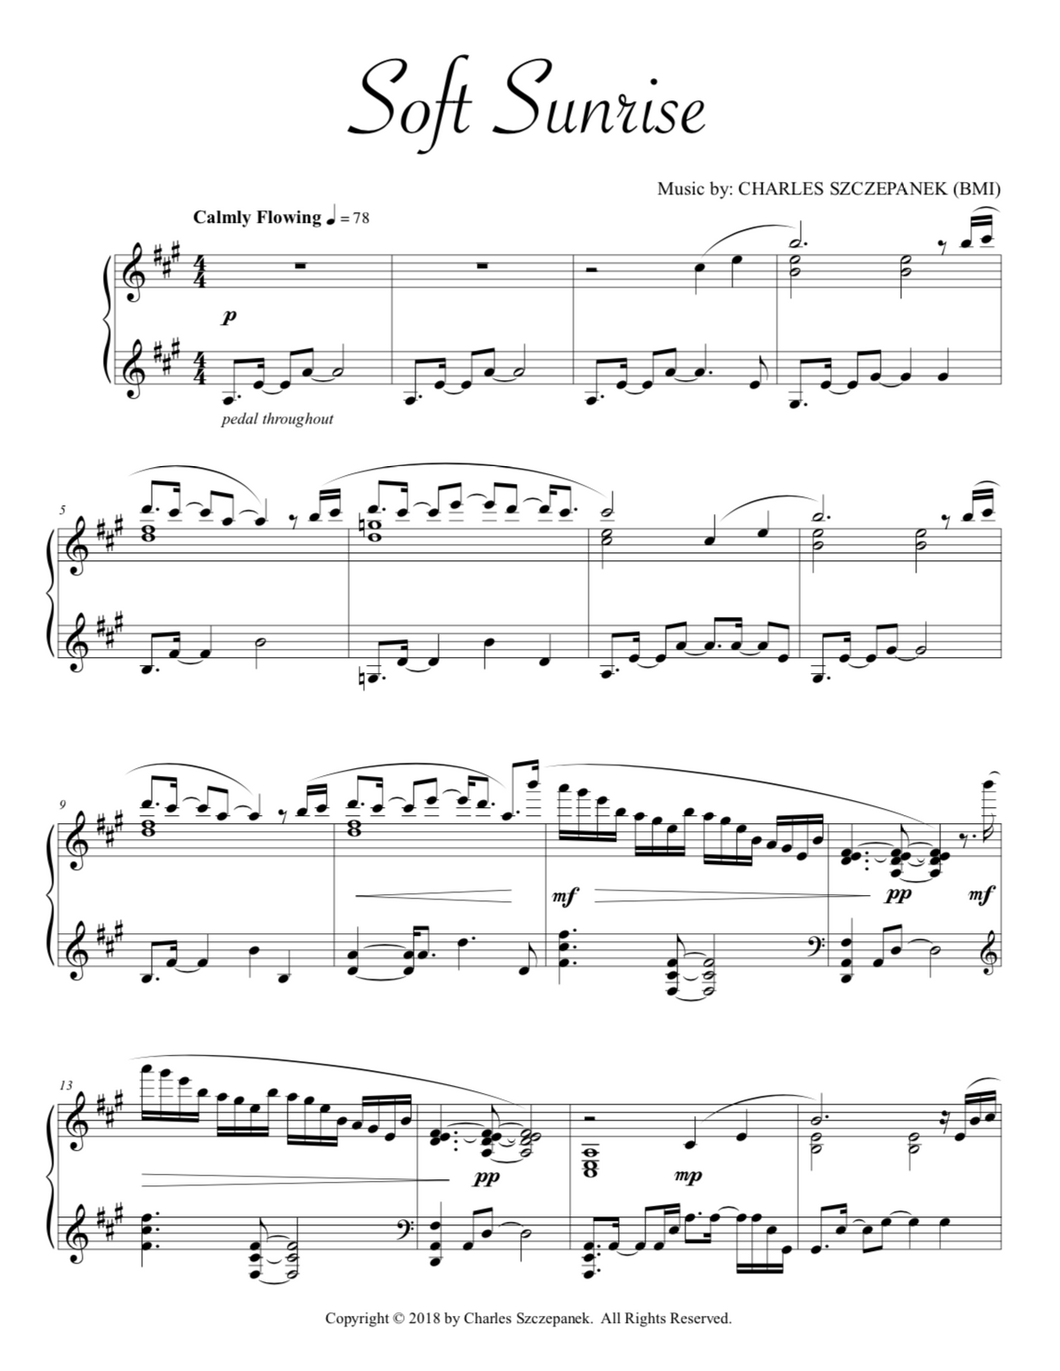 Soft Sunrise-Sheet Music for Solo Piano